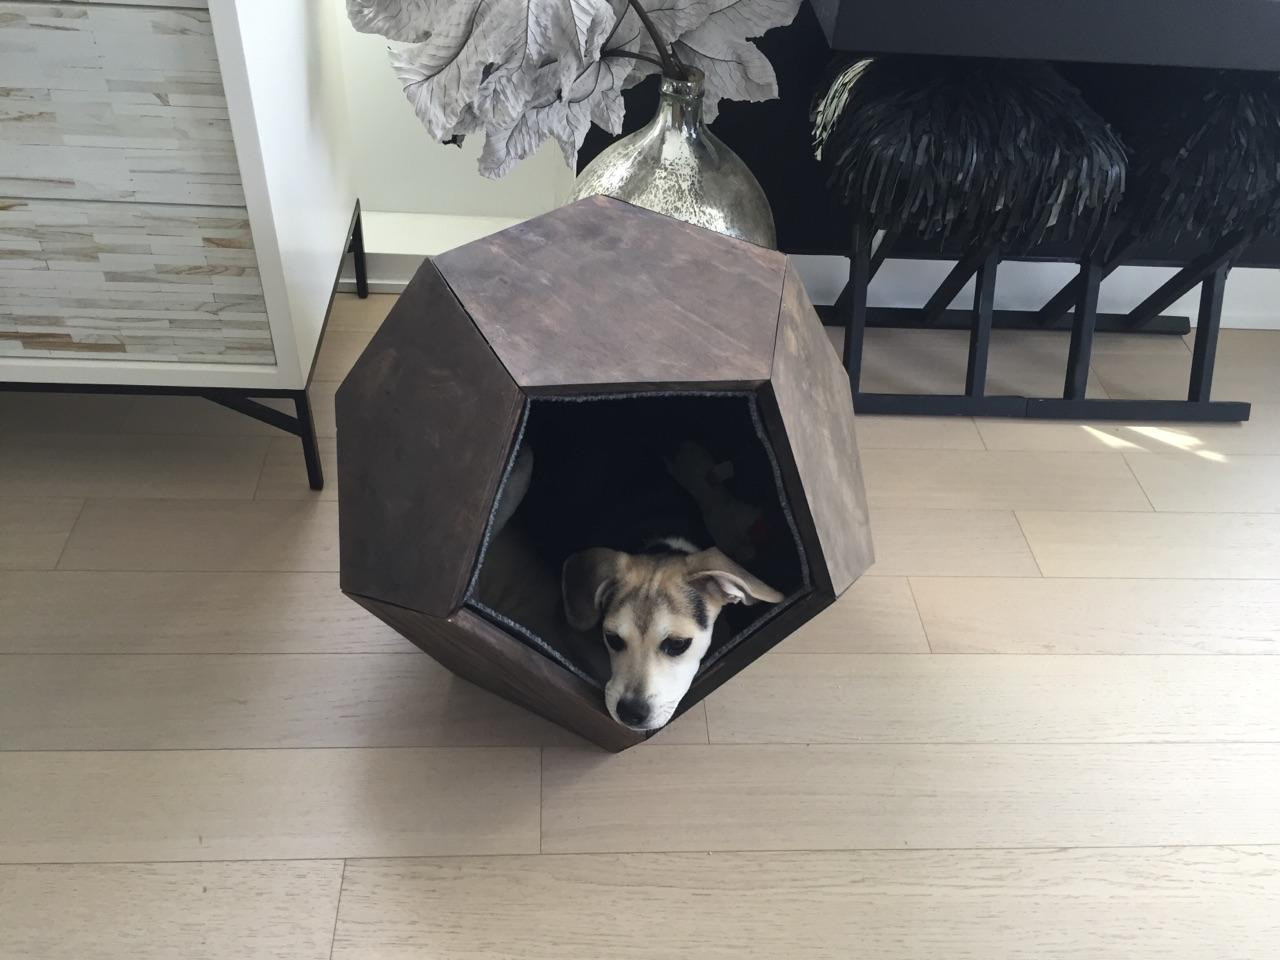 Best ideas about DIY Dog Shelter . Save or Pin 7 DIY Dog Houses to Shelter Your Furry Friends Now.